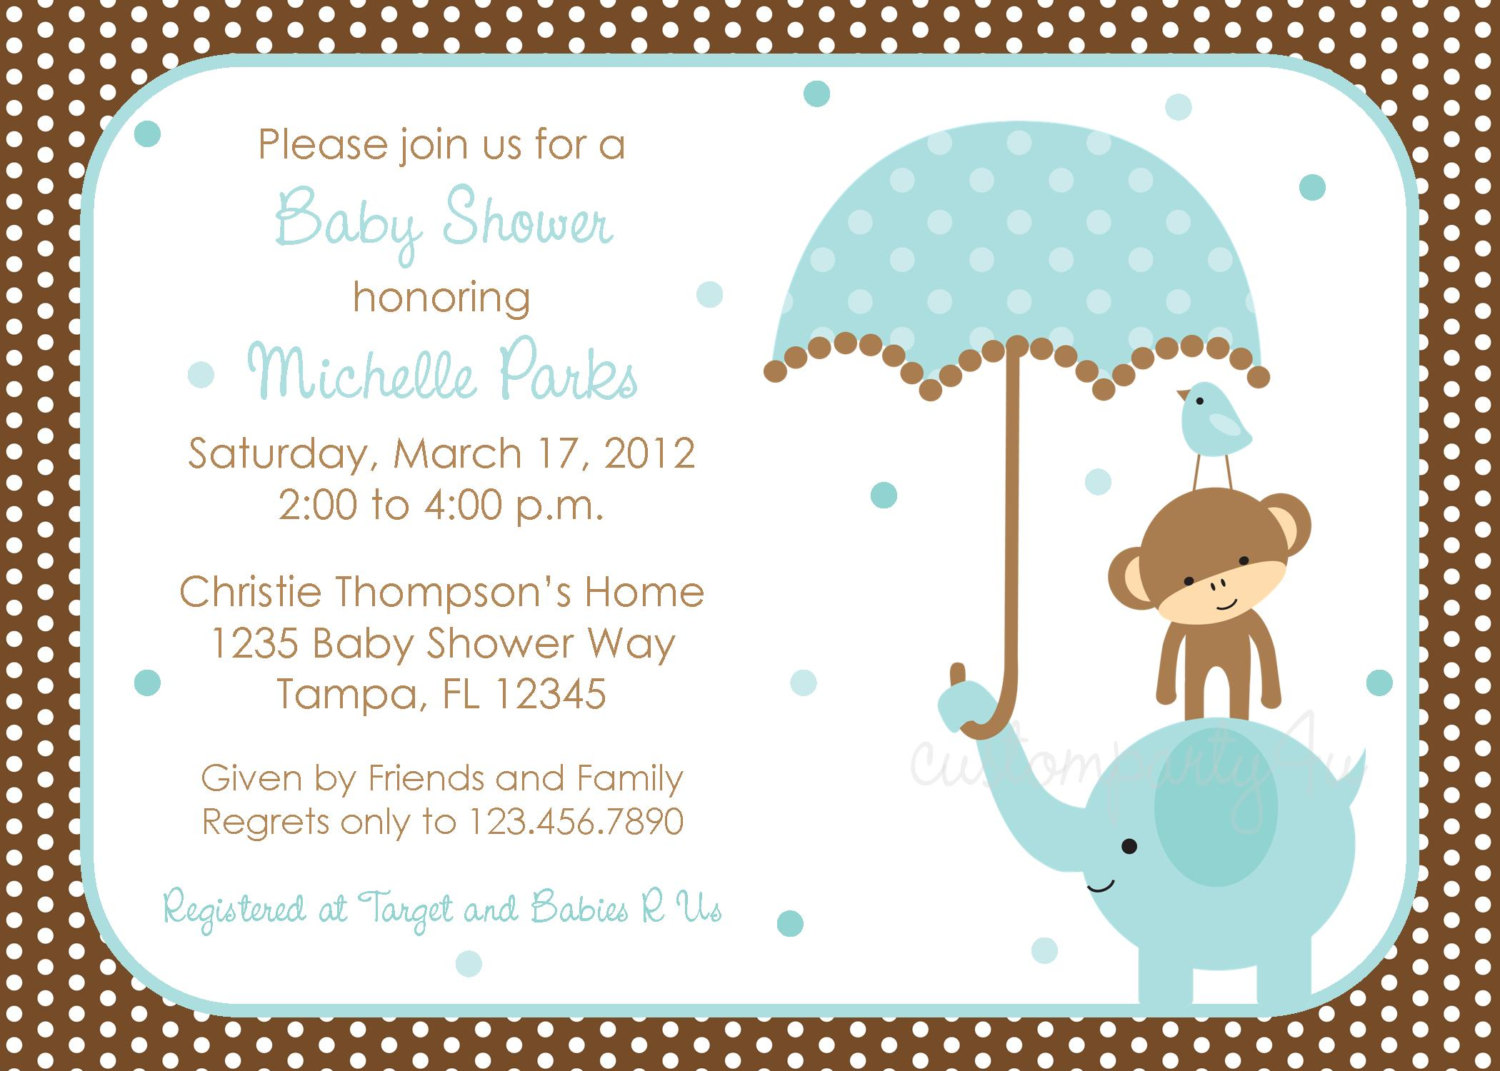 Full Size of Baby Shower:inspirational Elephant Baby Shower Invitations Photo Concepts Colors Free Baby Shower Invitations At Hobby Lobby With Hd Speach Free Baby Shower Invitations At Hobby Lobby With Hd Speach Awesome Card White Announcement